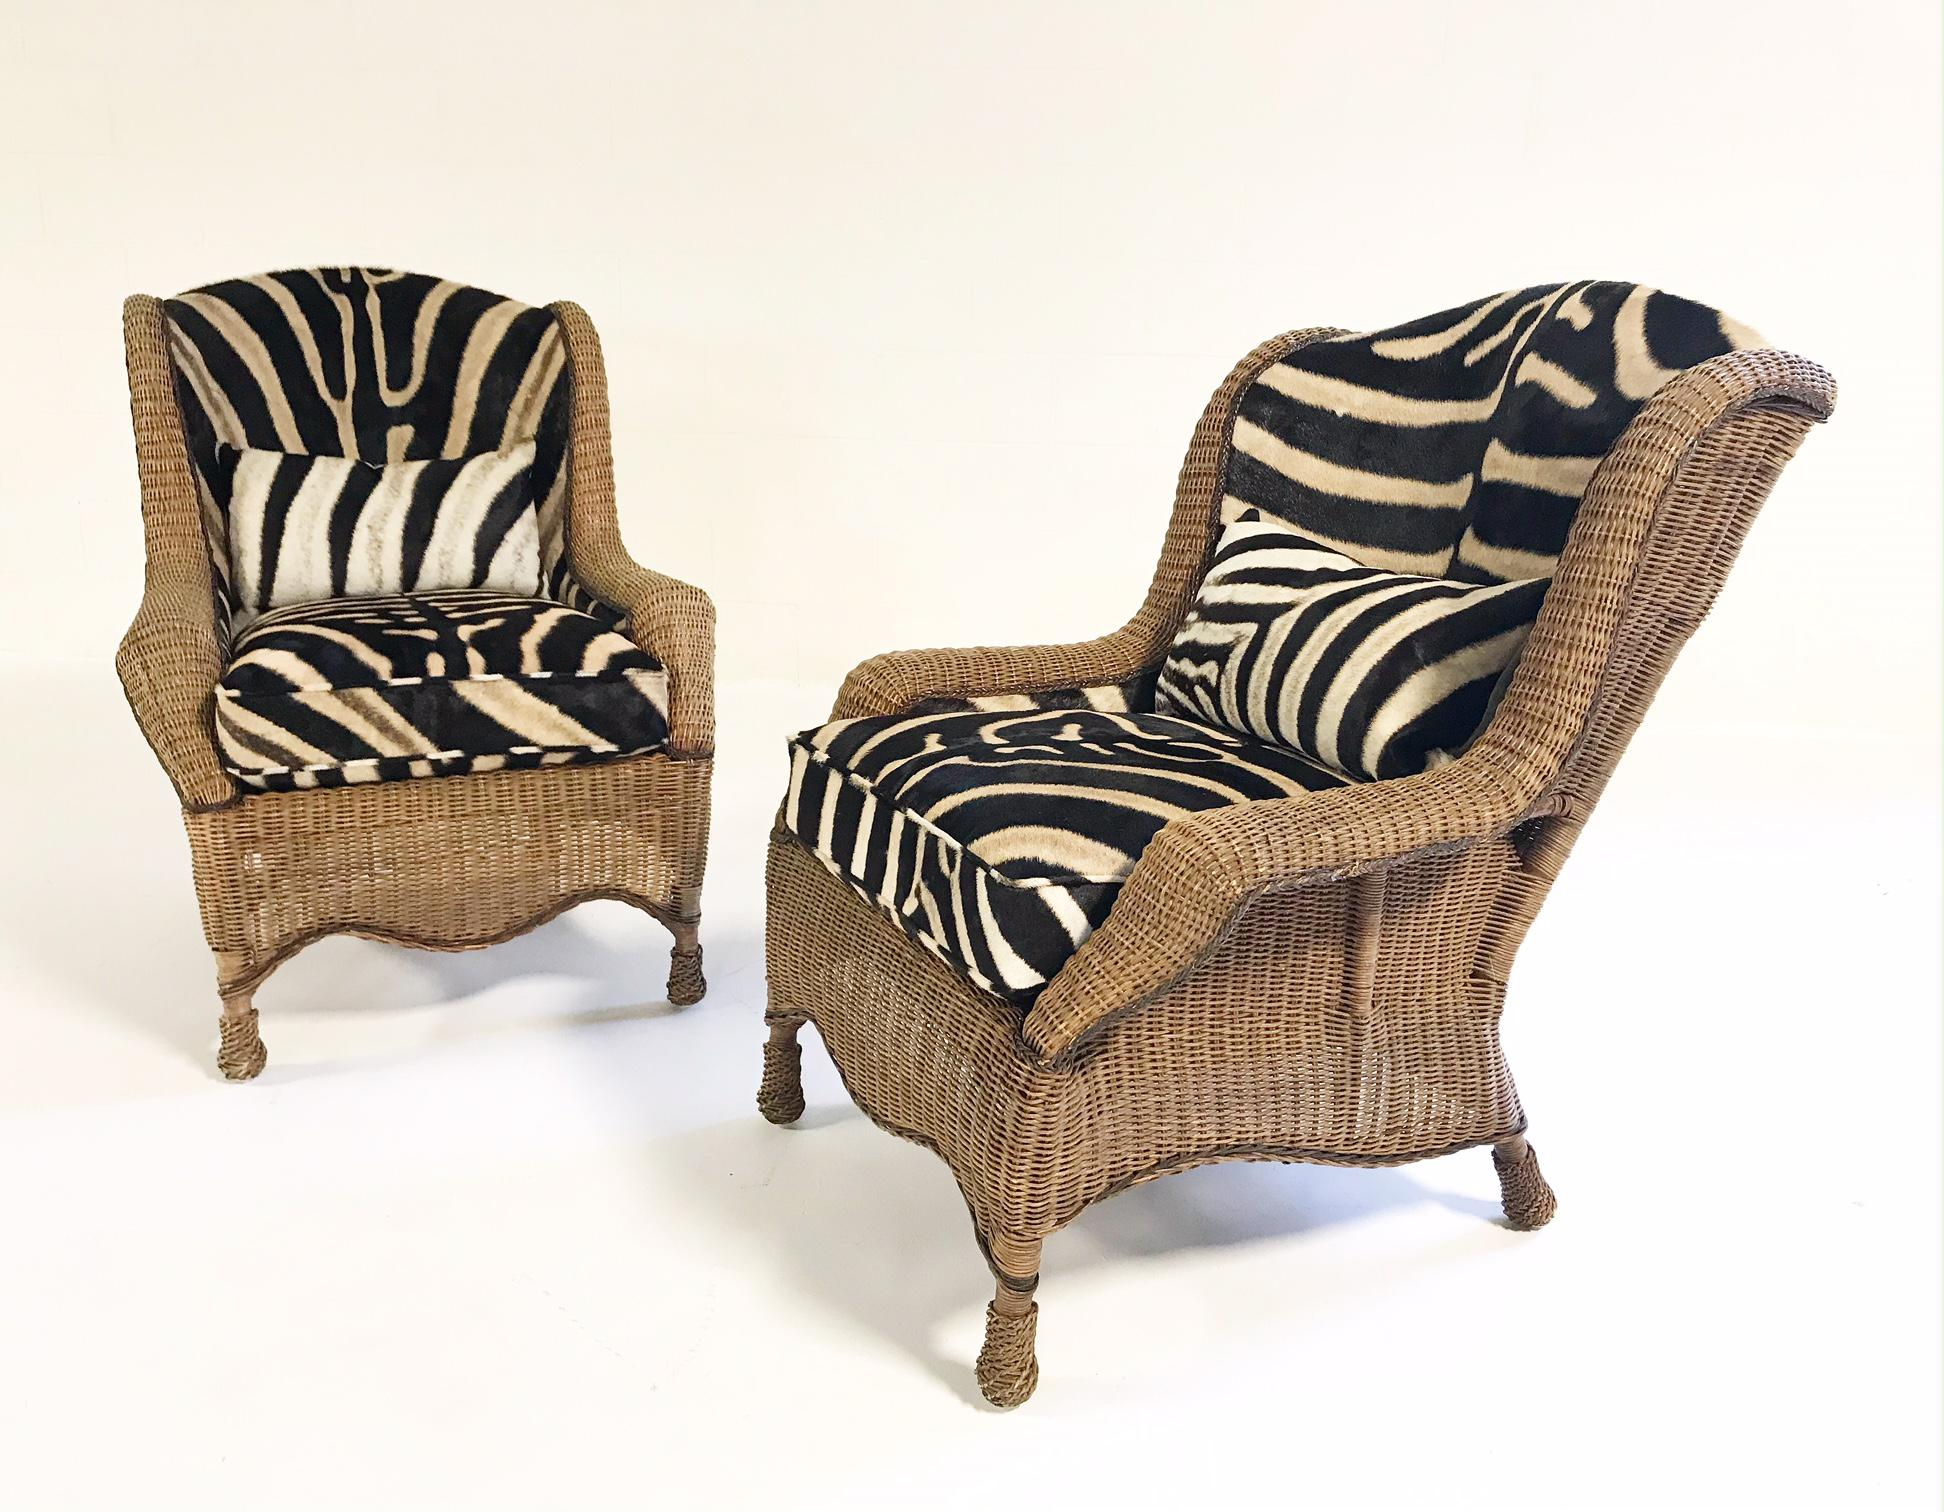 wicker wingback chairs wedding chair bows exceptional vintage ralph lauren restored in if we had a farm africa at the foot of ngong hills primitive